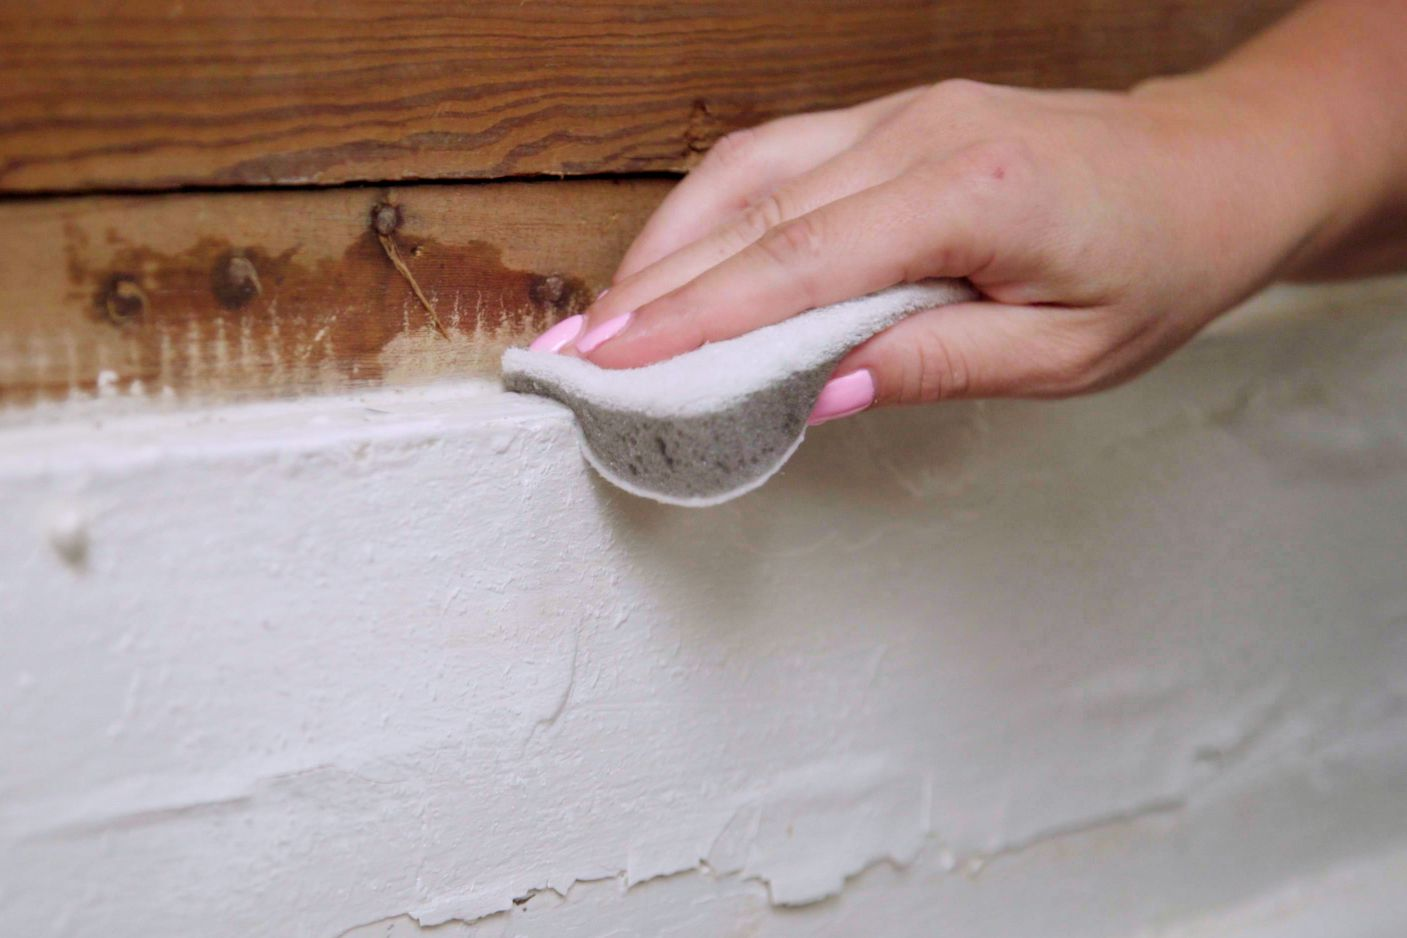 White baseboards being cleaned by hand with wet sponge